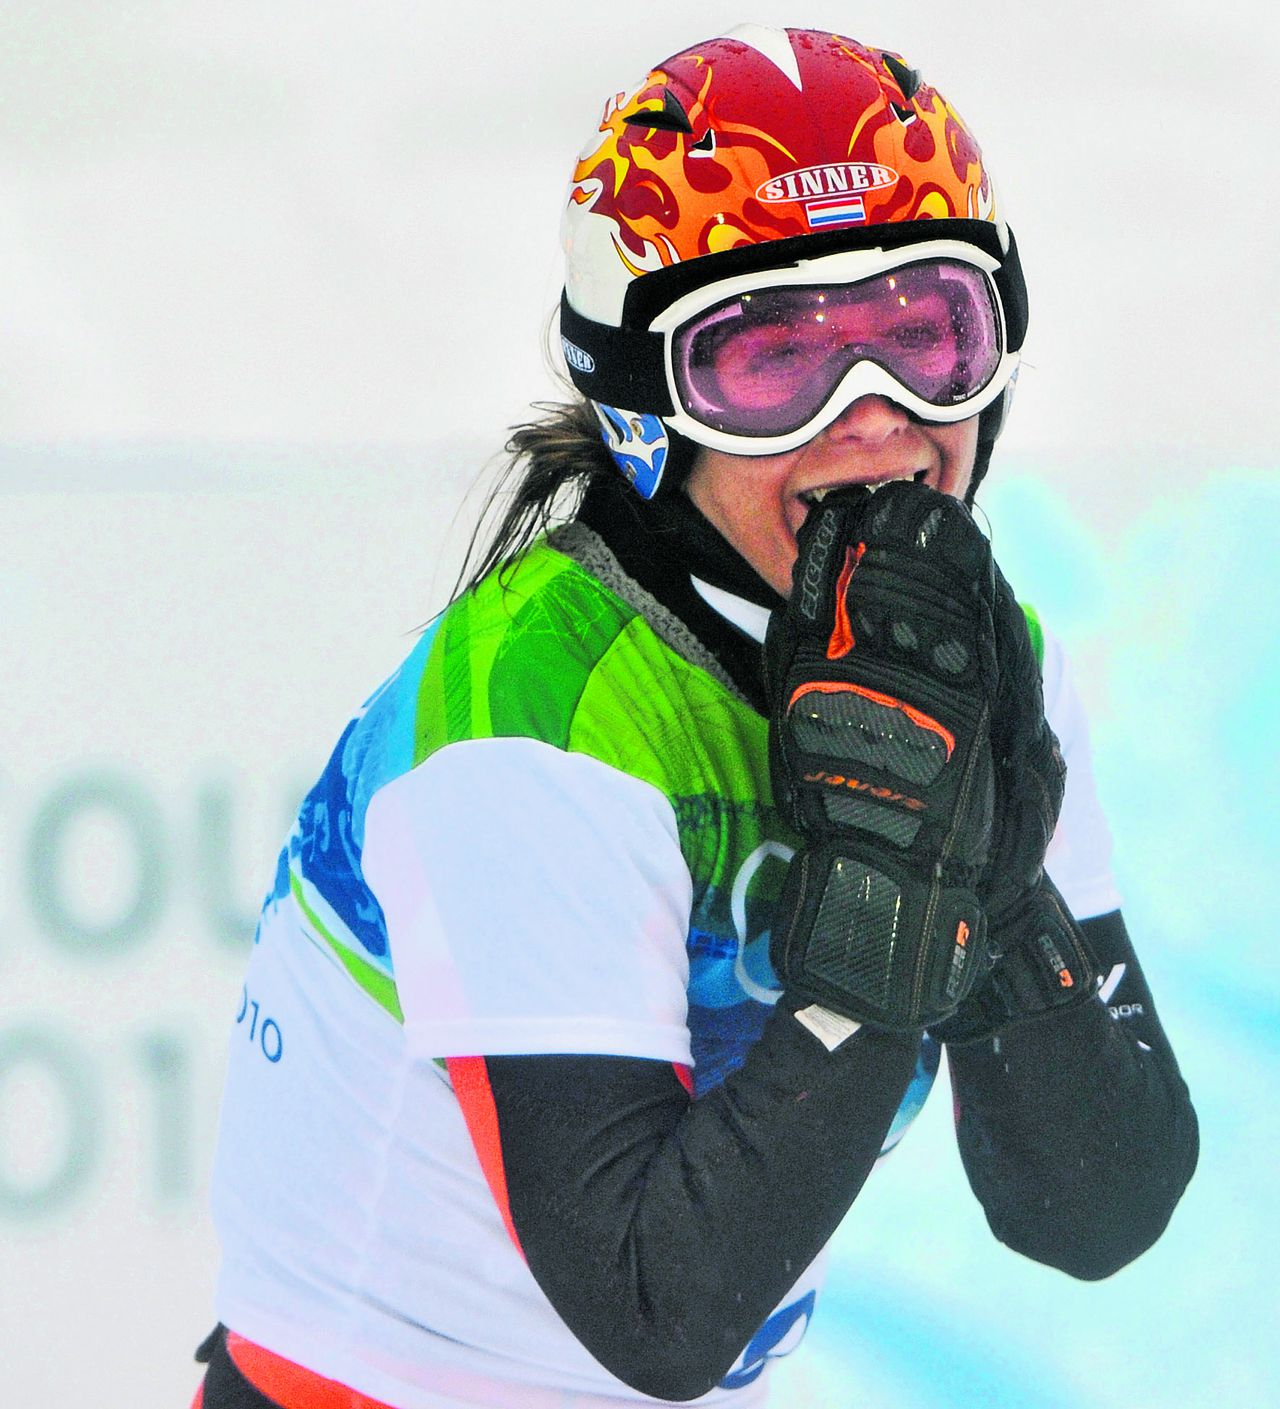 Olympic champion Nicolien Sauerbreij of Holland reacts after winning the women's Parallel Giant Slalom snowboarding competition at the Vancouver 2010 Olympics in Vancouver, British Columbia, Friday, Feb. 26, 2010. (AP Photo/Bela Szandelszky)